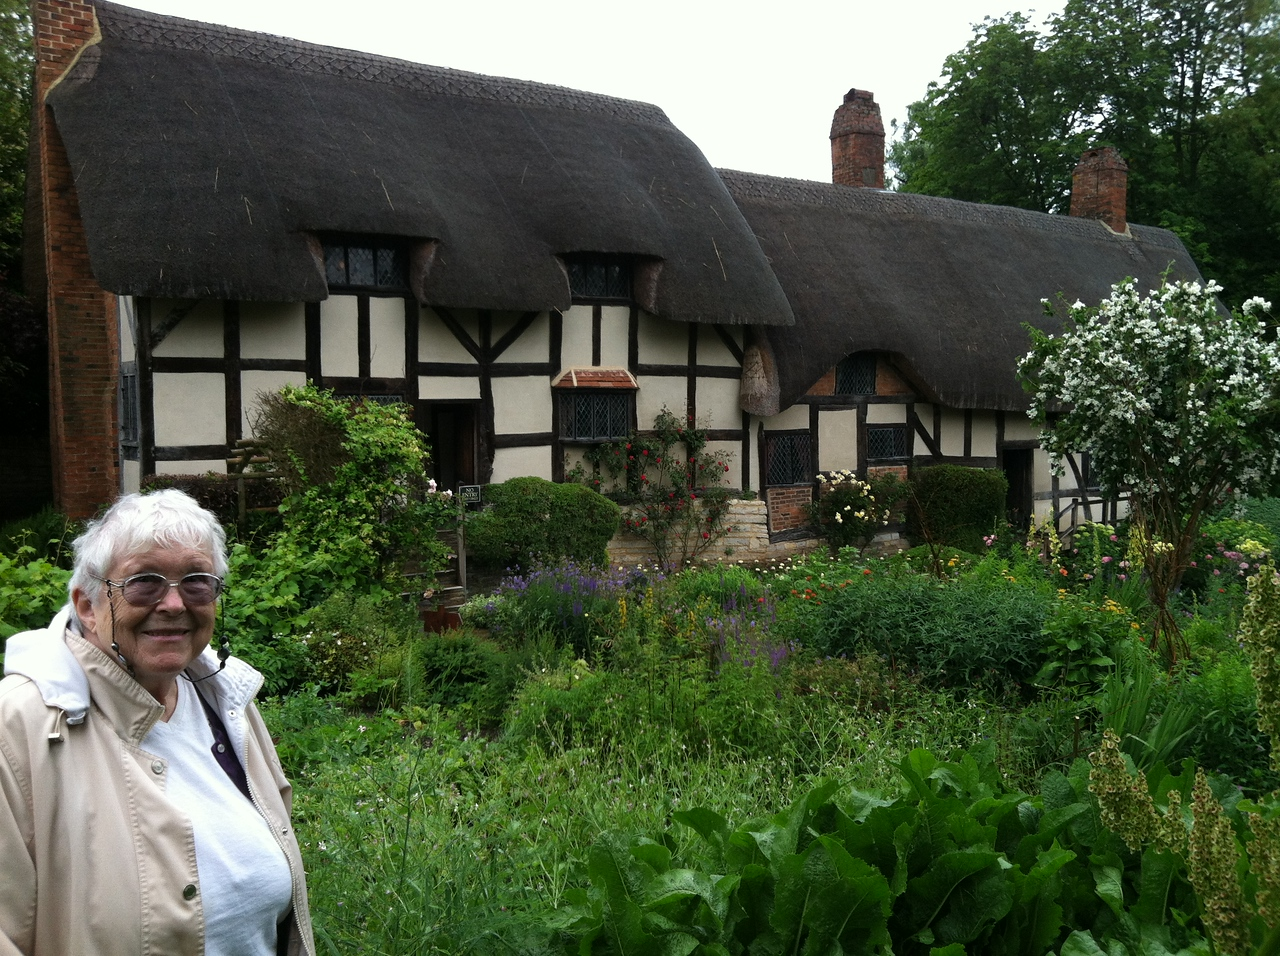 2 July 2012: Anne Hathaway's Cottage. I like the gardens lots.